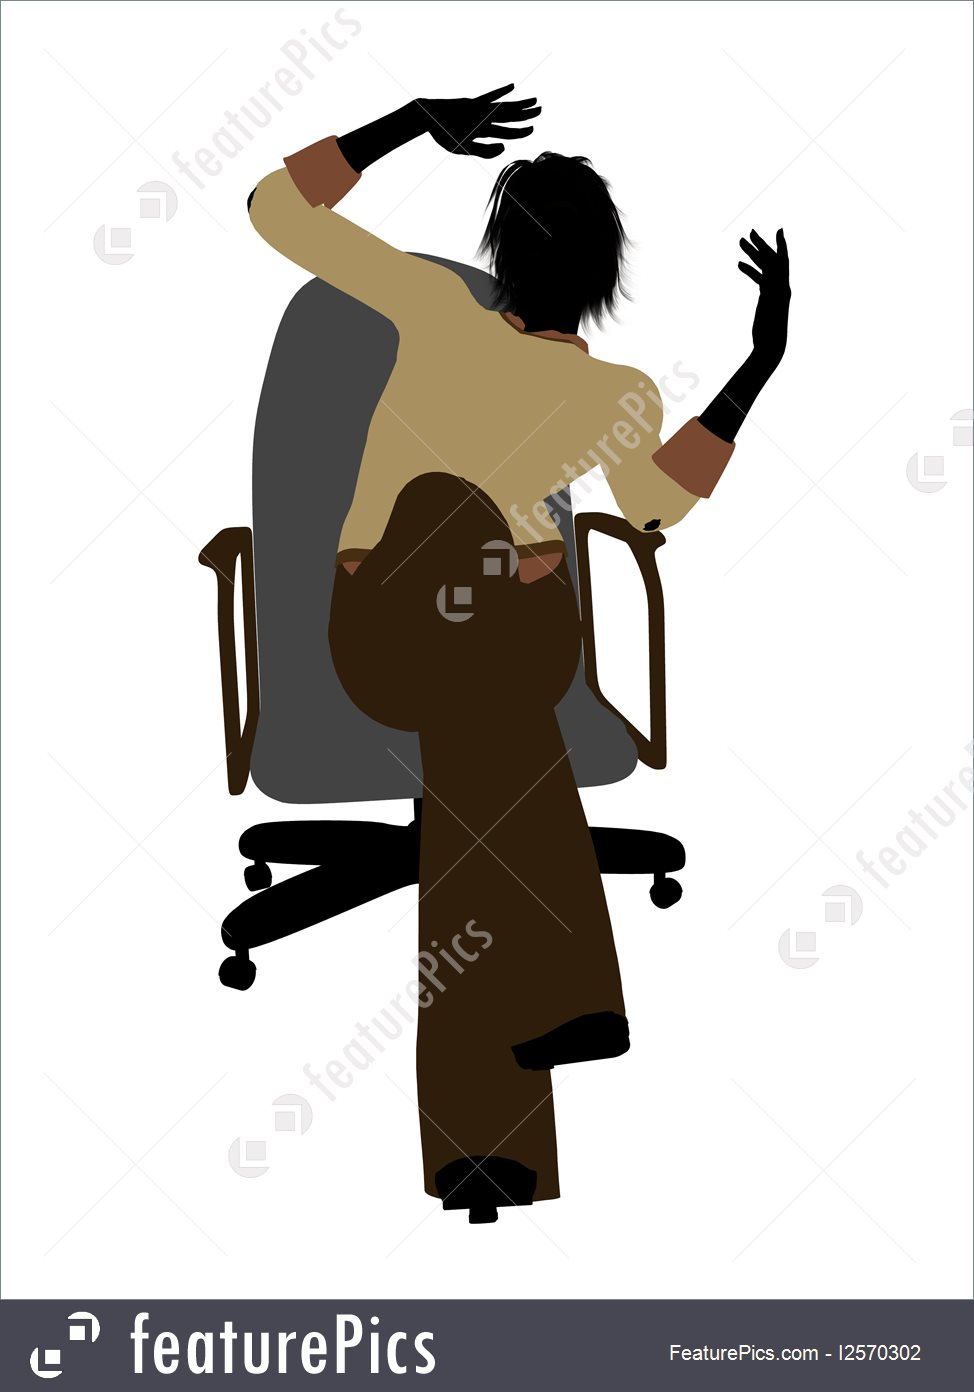 974x1392 Female Executive Sitting On An Office Chair Silhouette Illustration